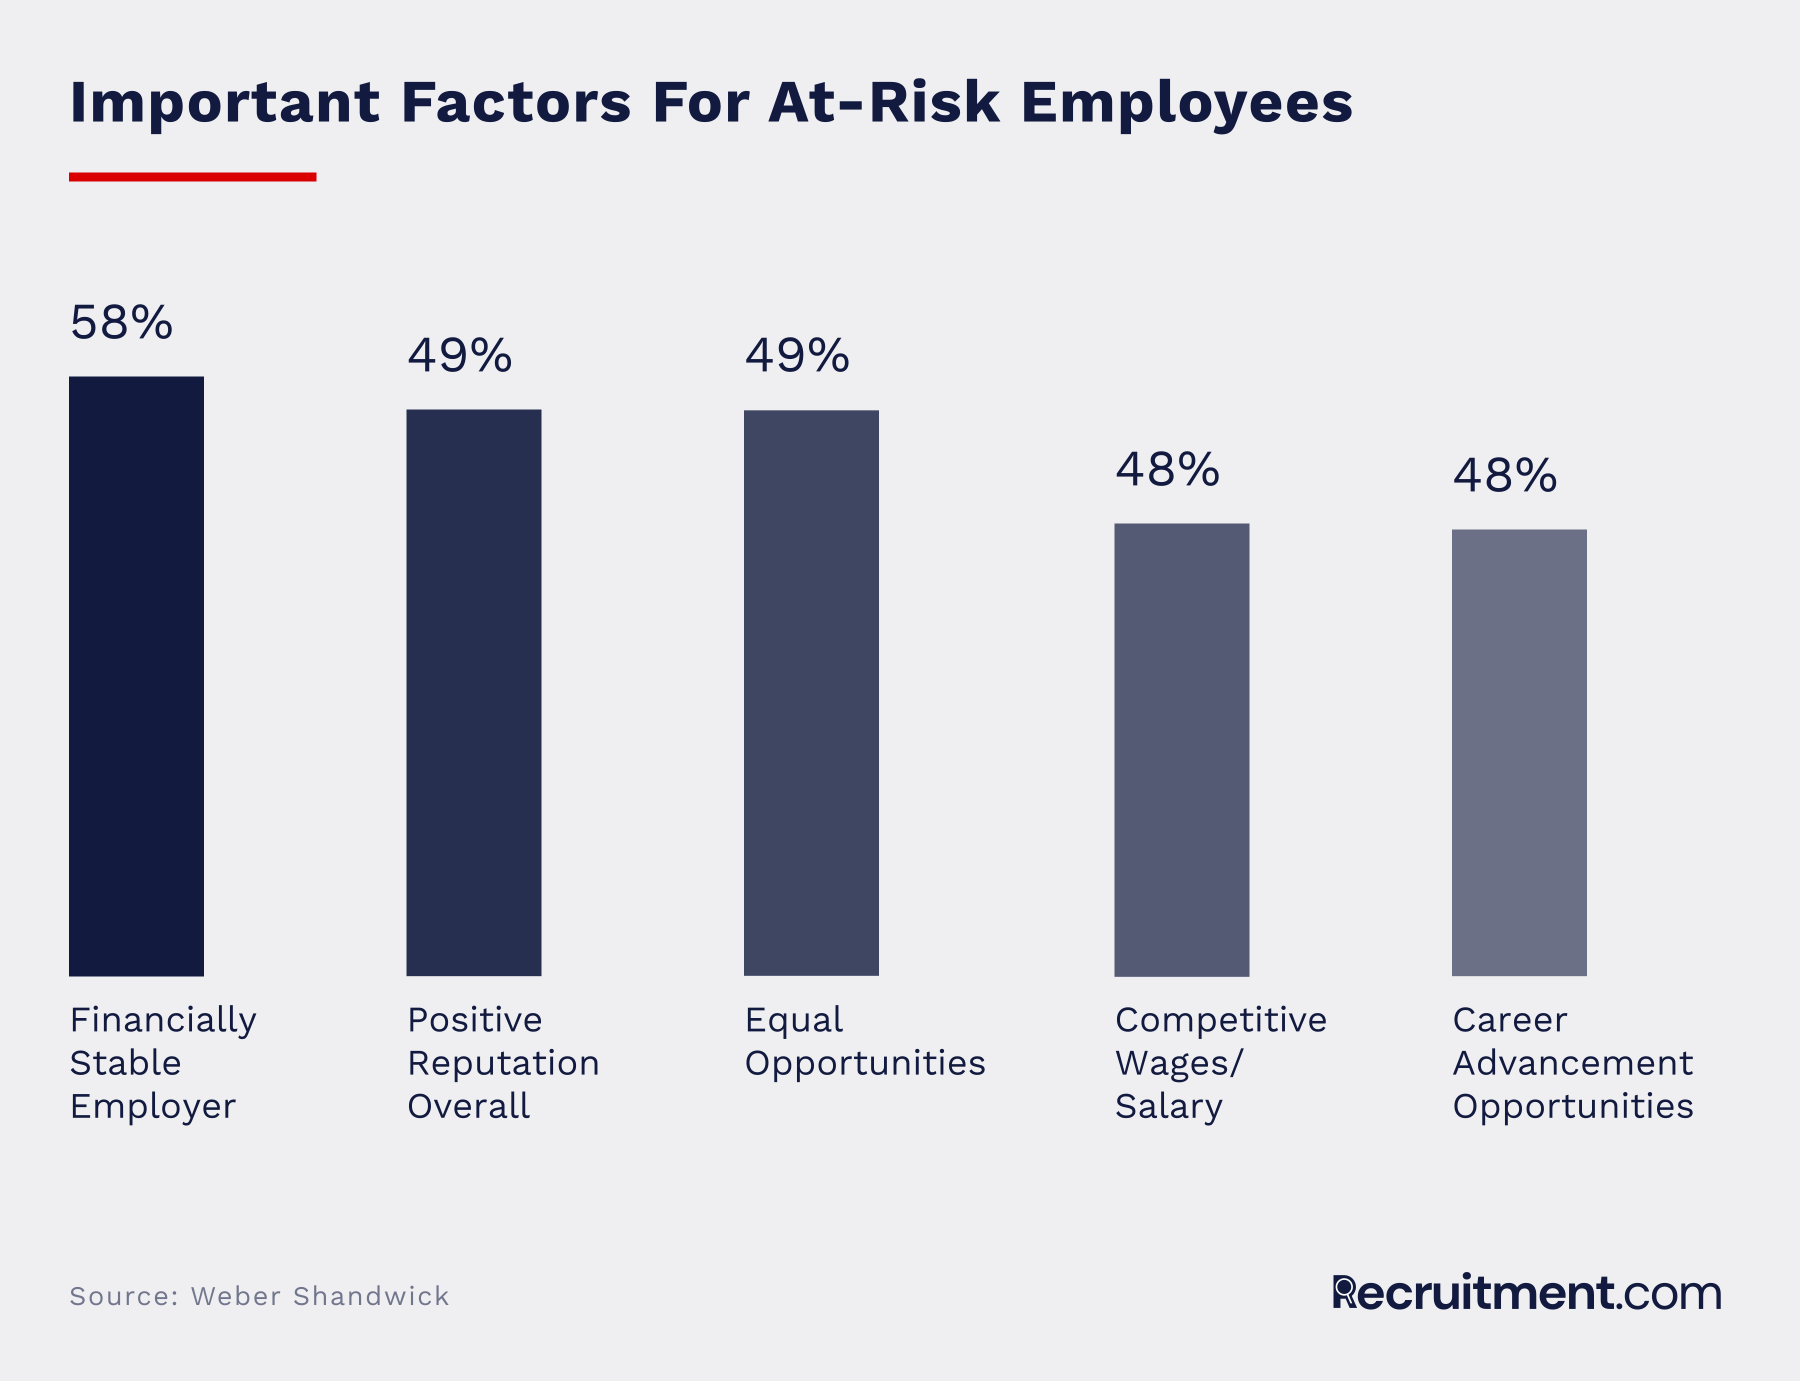 Factors for at-risk employees